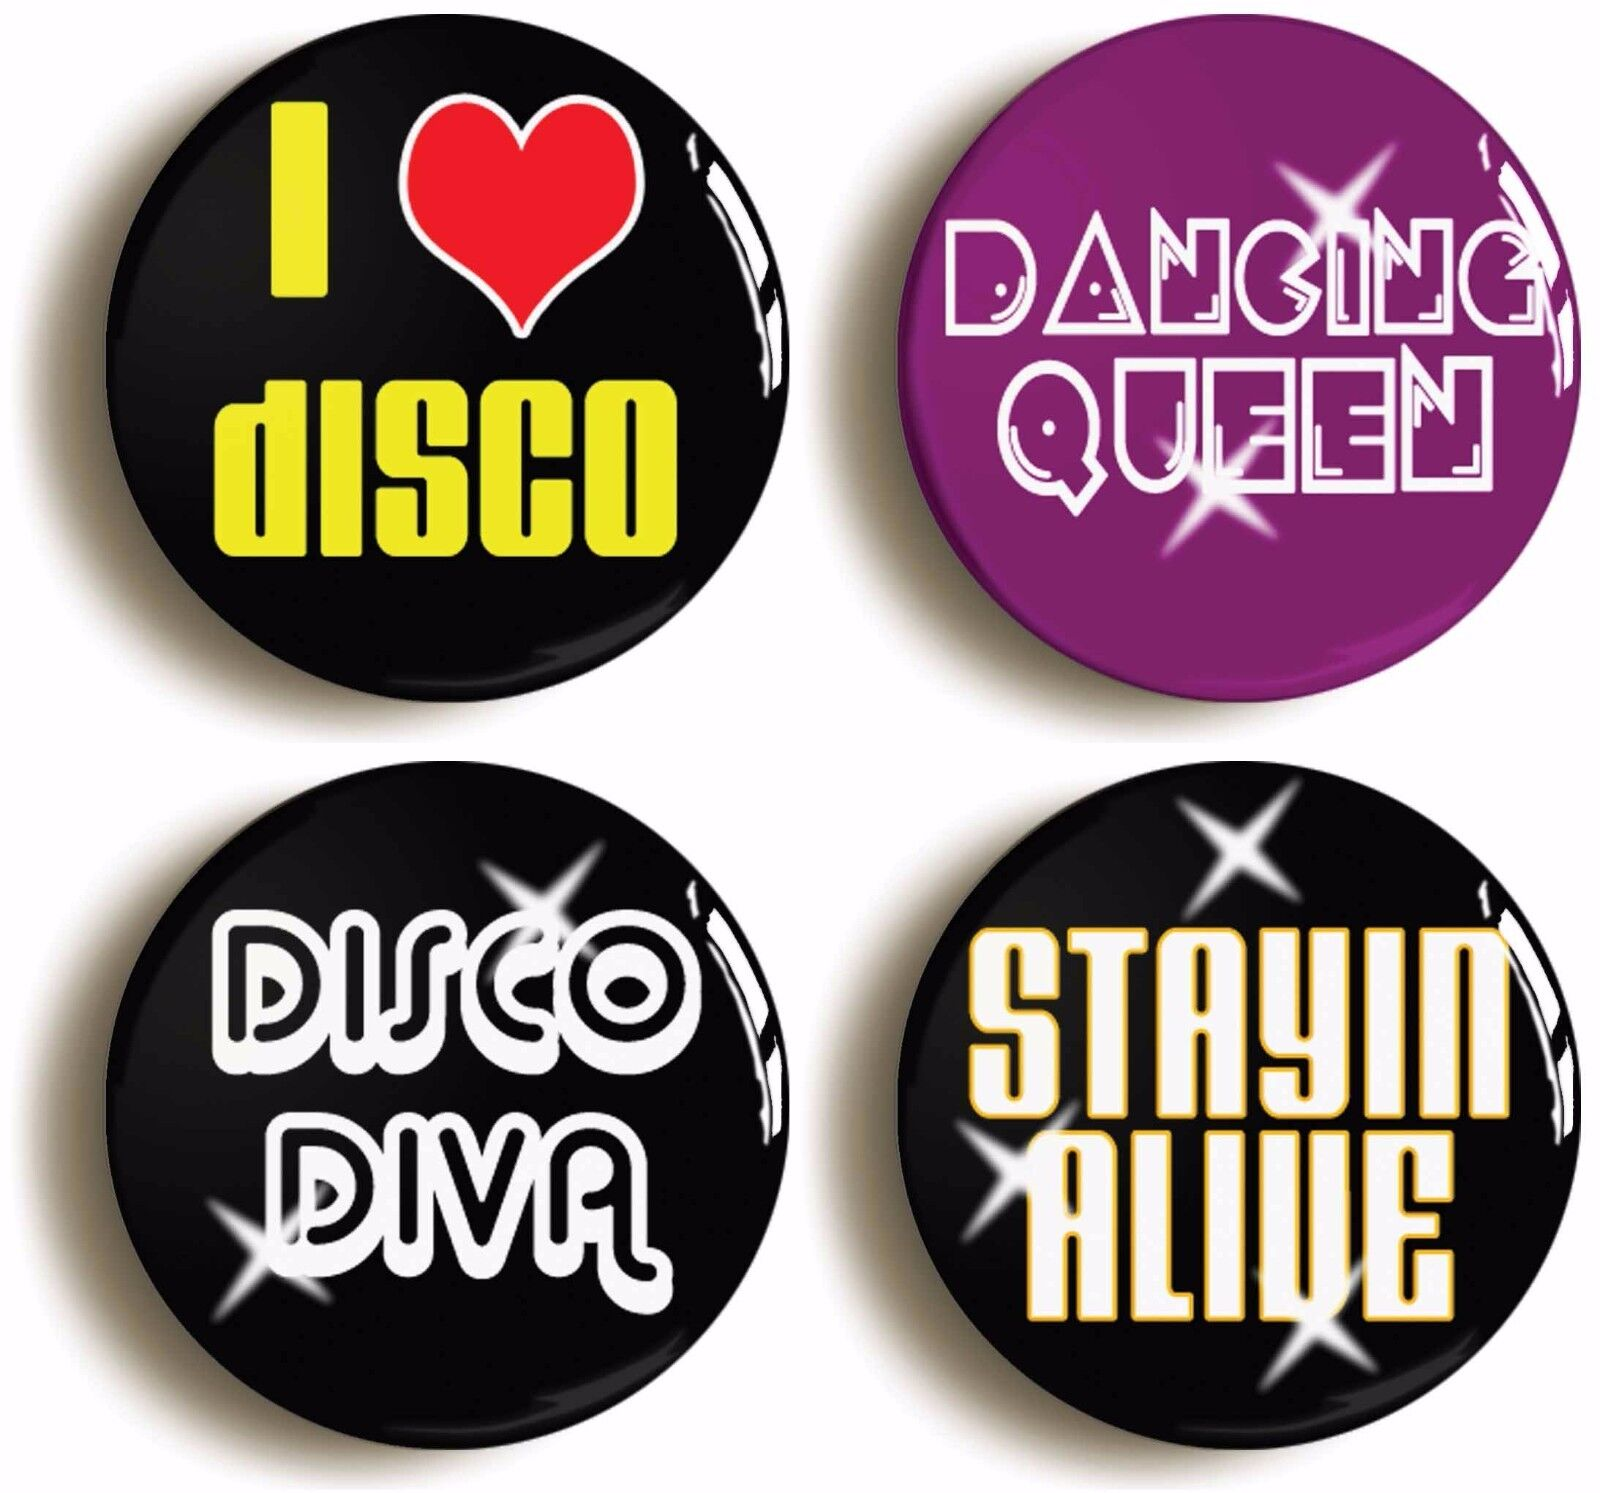 seventies disco badge button pin set (size is 1inch/25mm diameter) 1970s costume